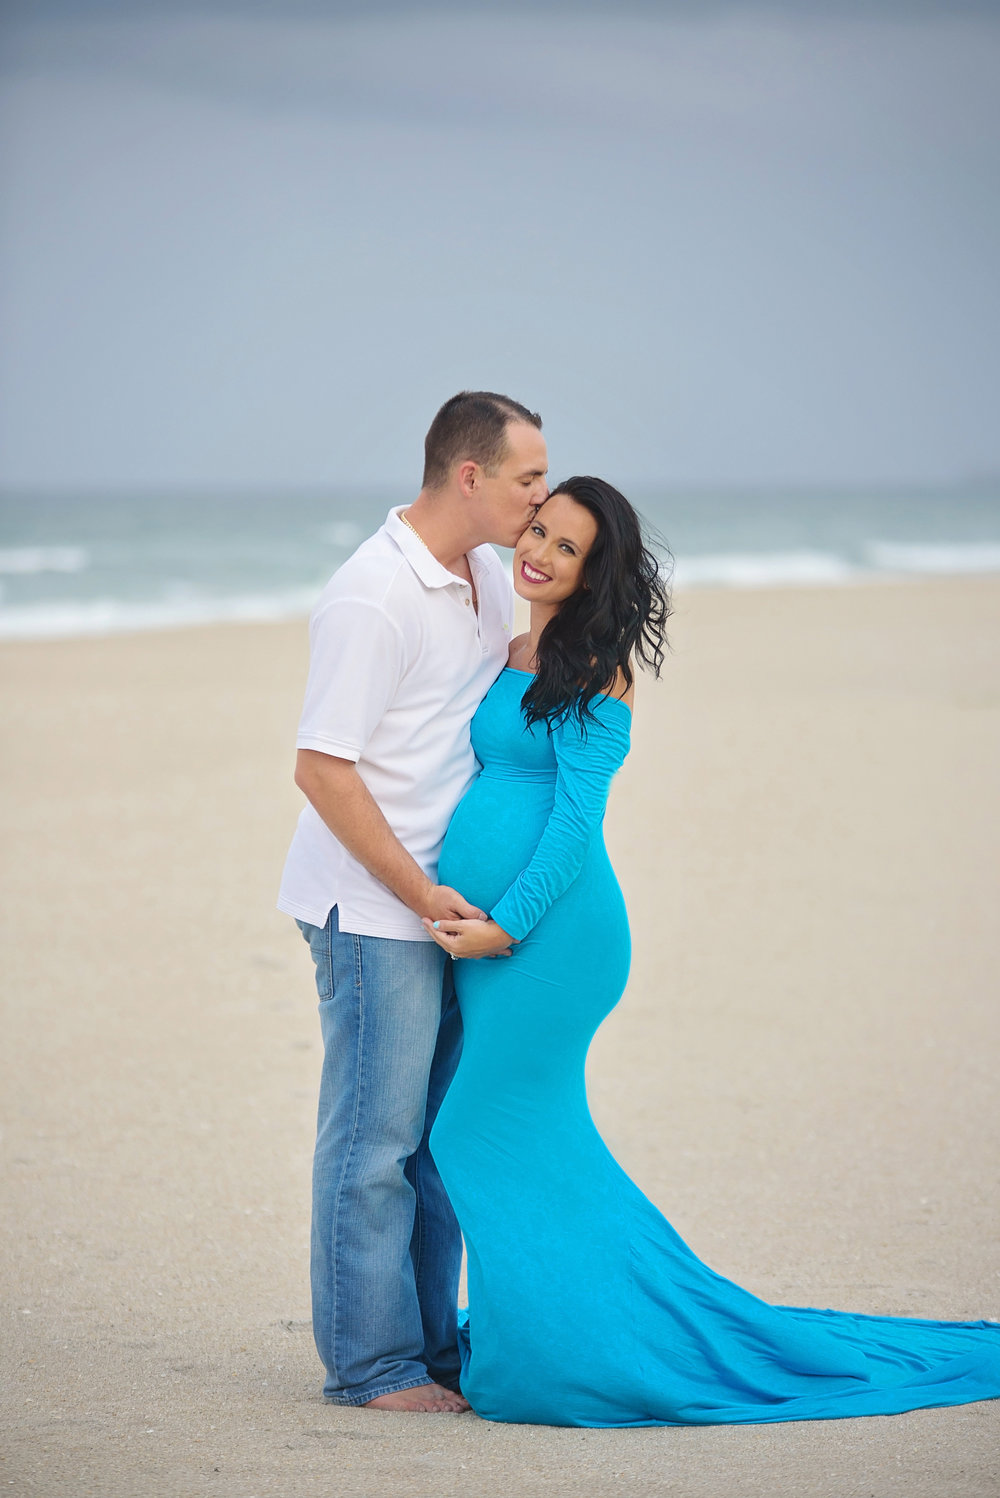 pregnancy-photographer-maternity-photograpy-expecting-mom-tequesta-jupiter-boynton-beach-delray-beach-wellington-lake-worth-boca-raton-parkland-captured-moments-by-dawn.jpg